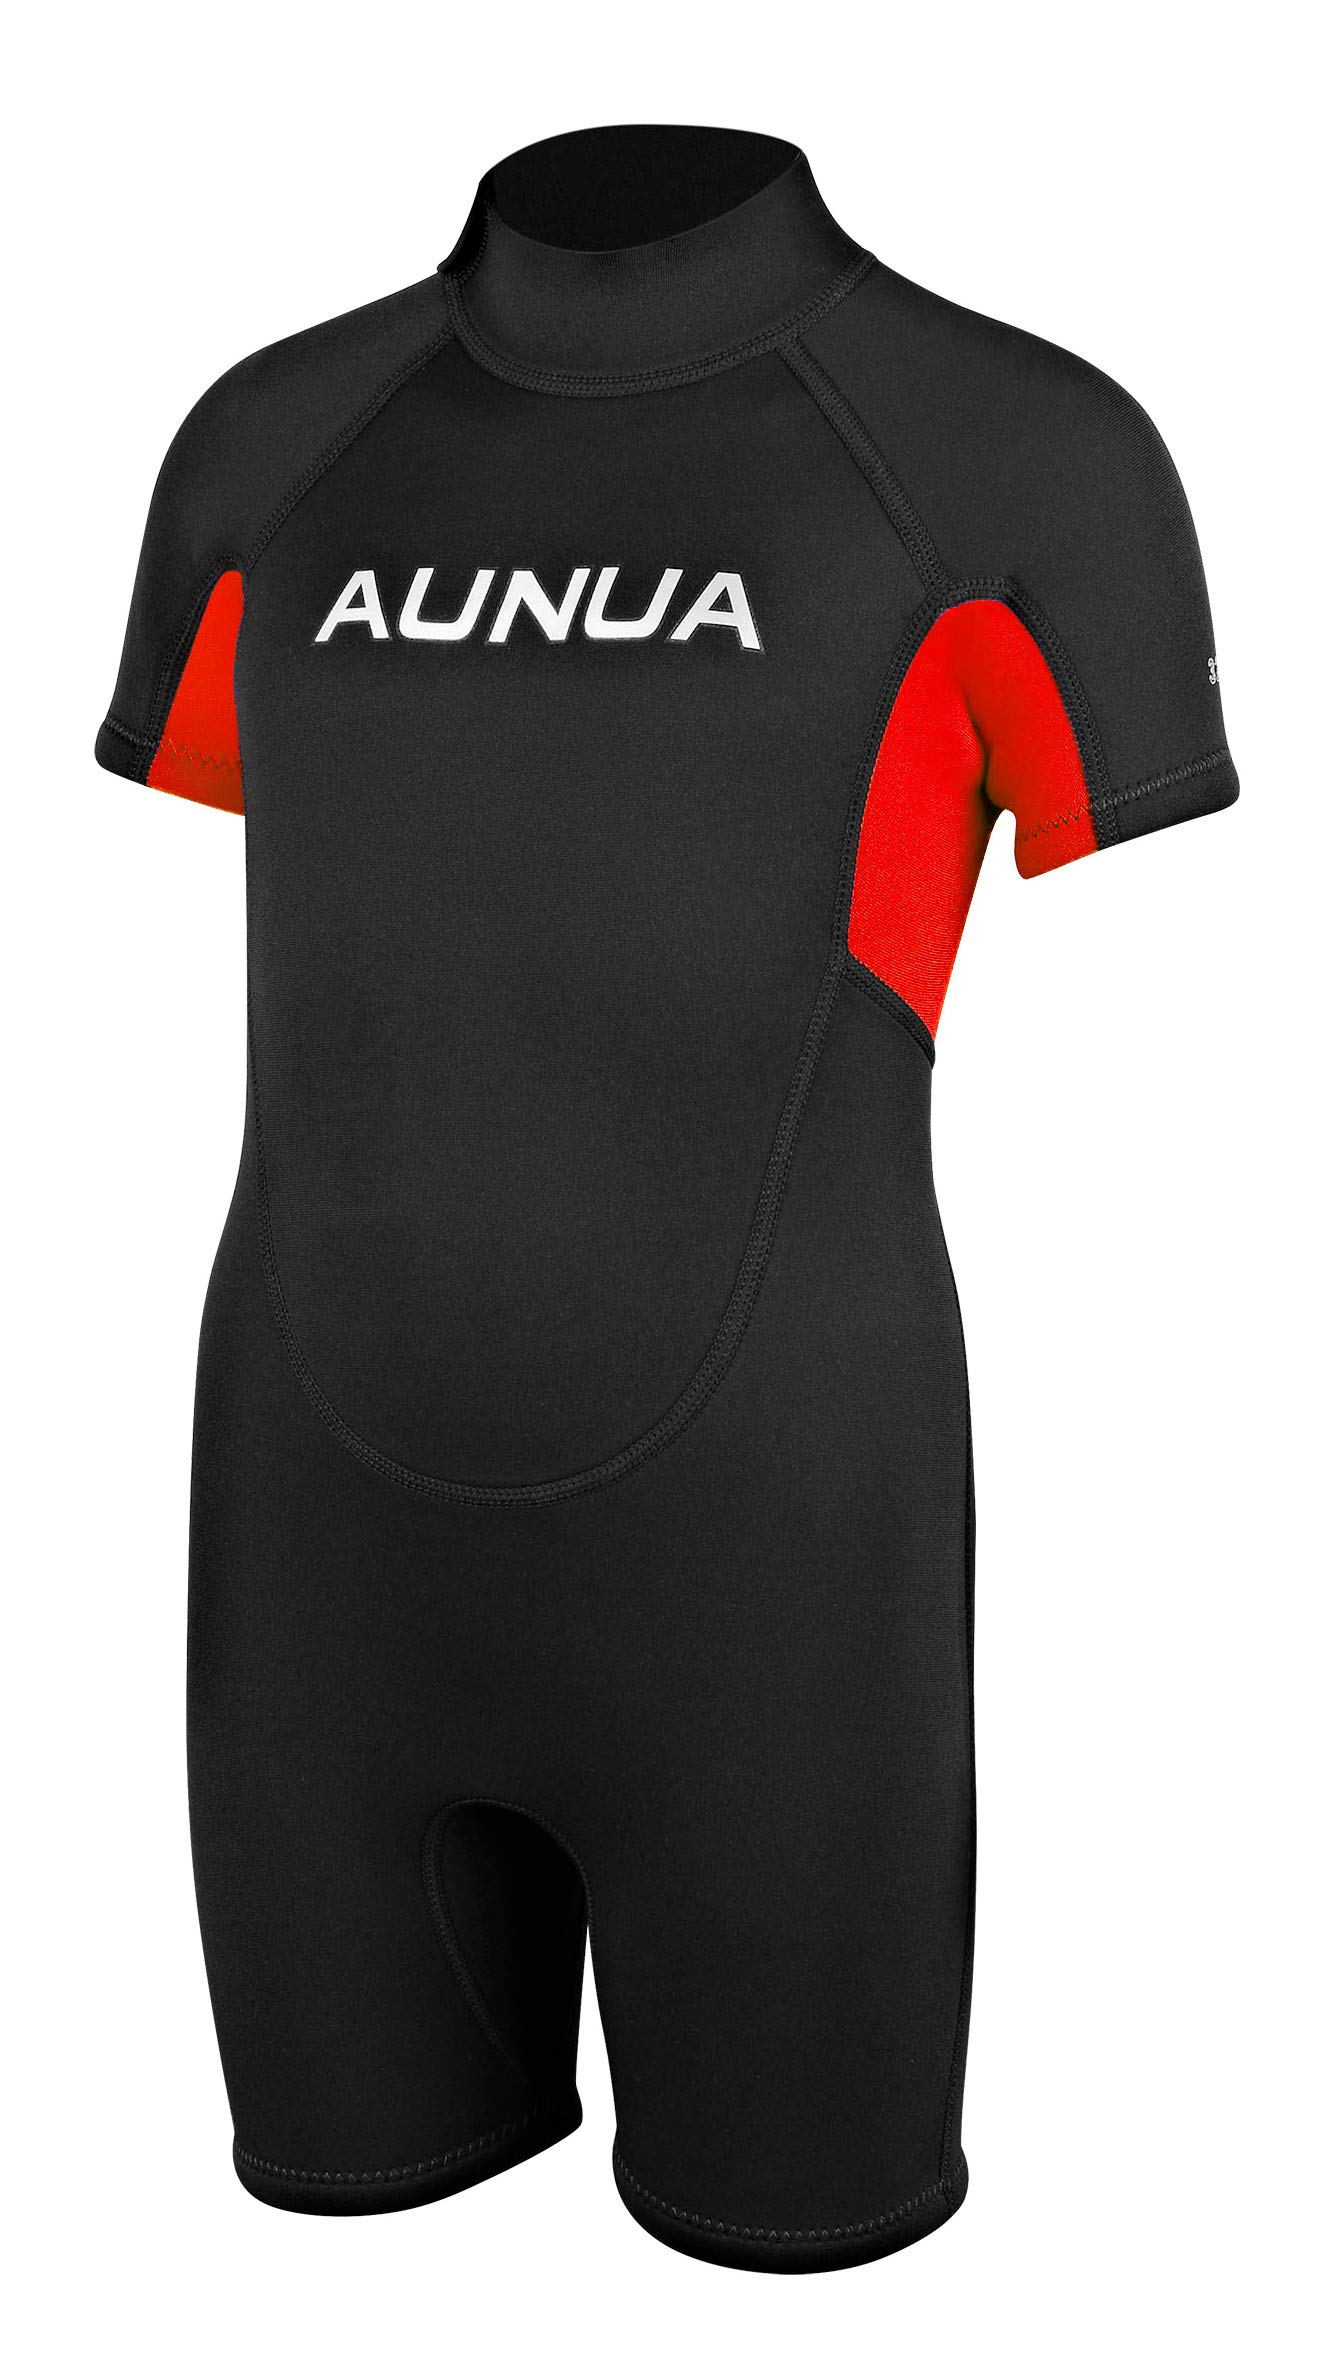 Aunua Children's 3mm Youth Swimming Suit Shorty Wetsuits Neoprene for Kids Keep Warm(7035 BlackRed 16) by Aunua